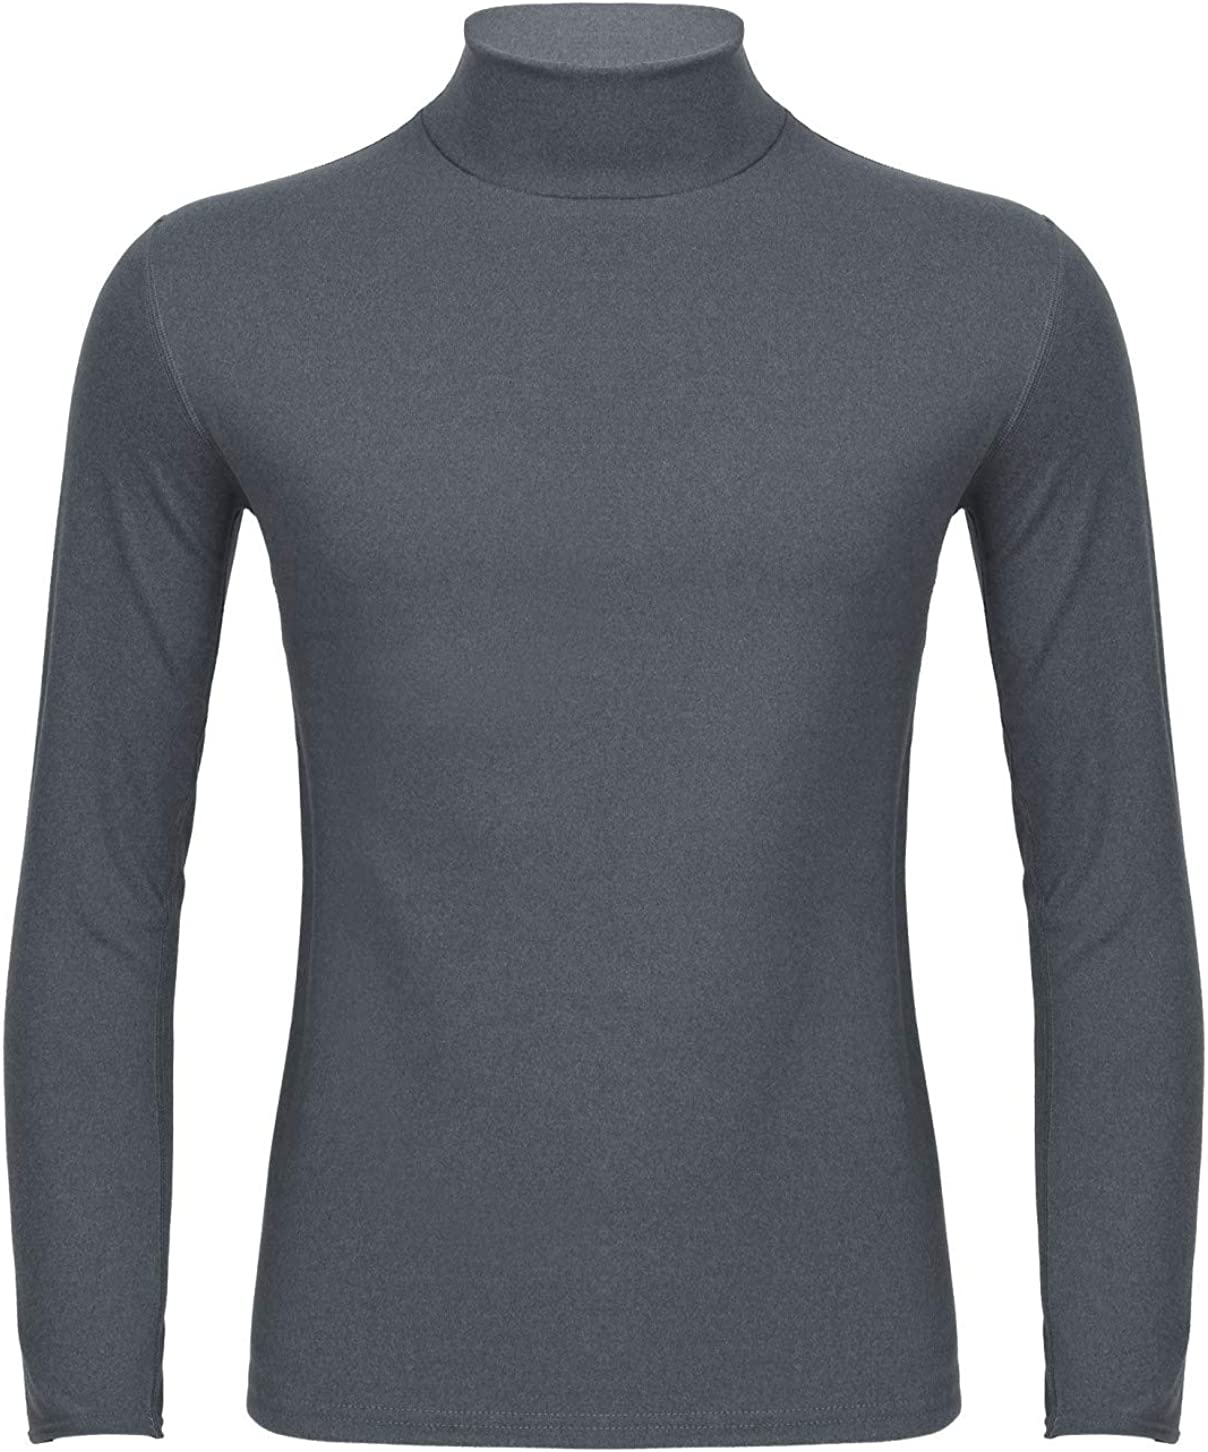 Freebily Thermal Underwear Tops for Men Turtleneck Long Sleeve Knitted Pullover Sim Fit Undershirt T-Shirt